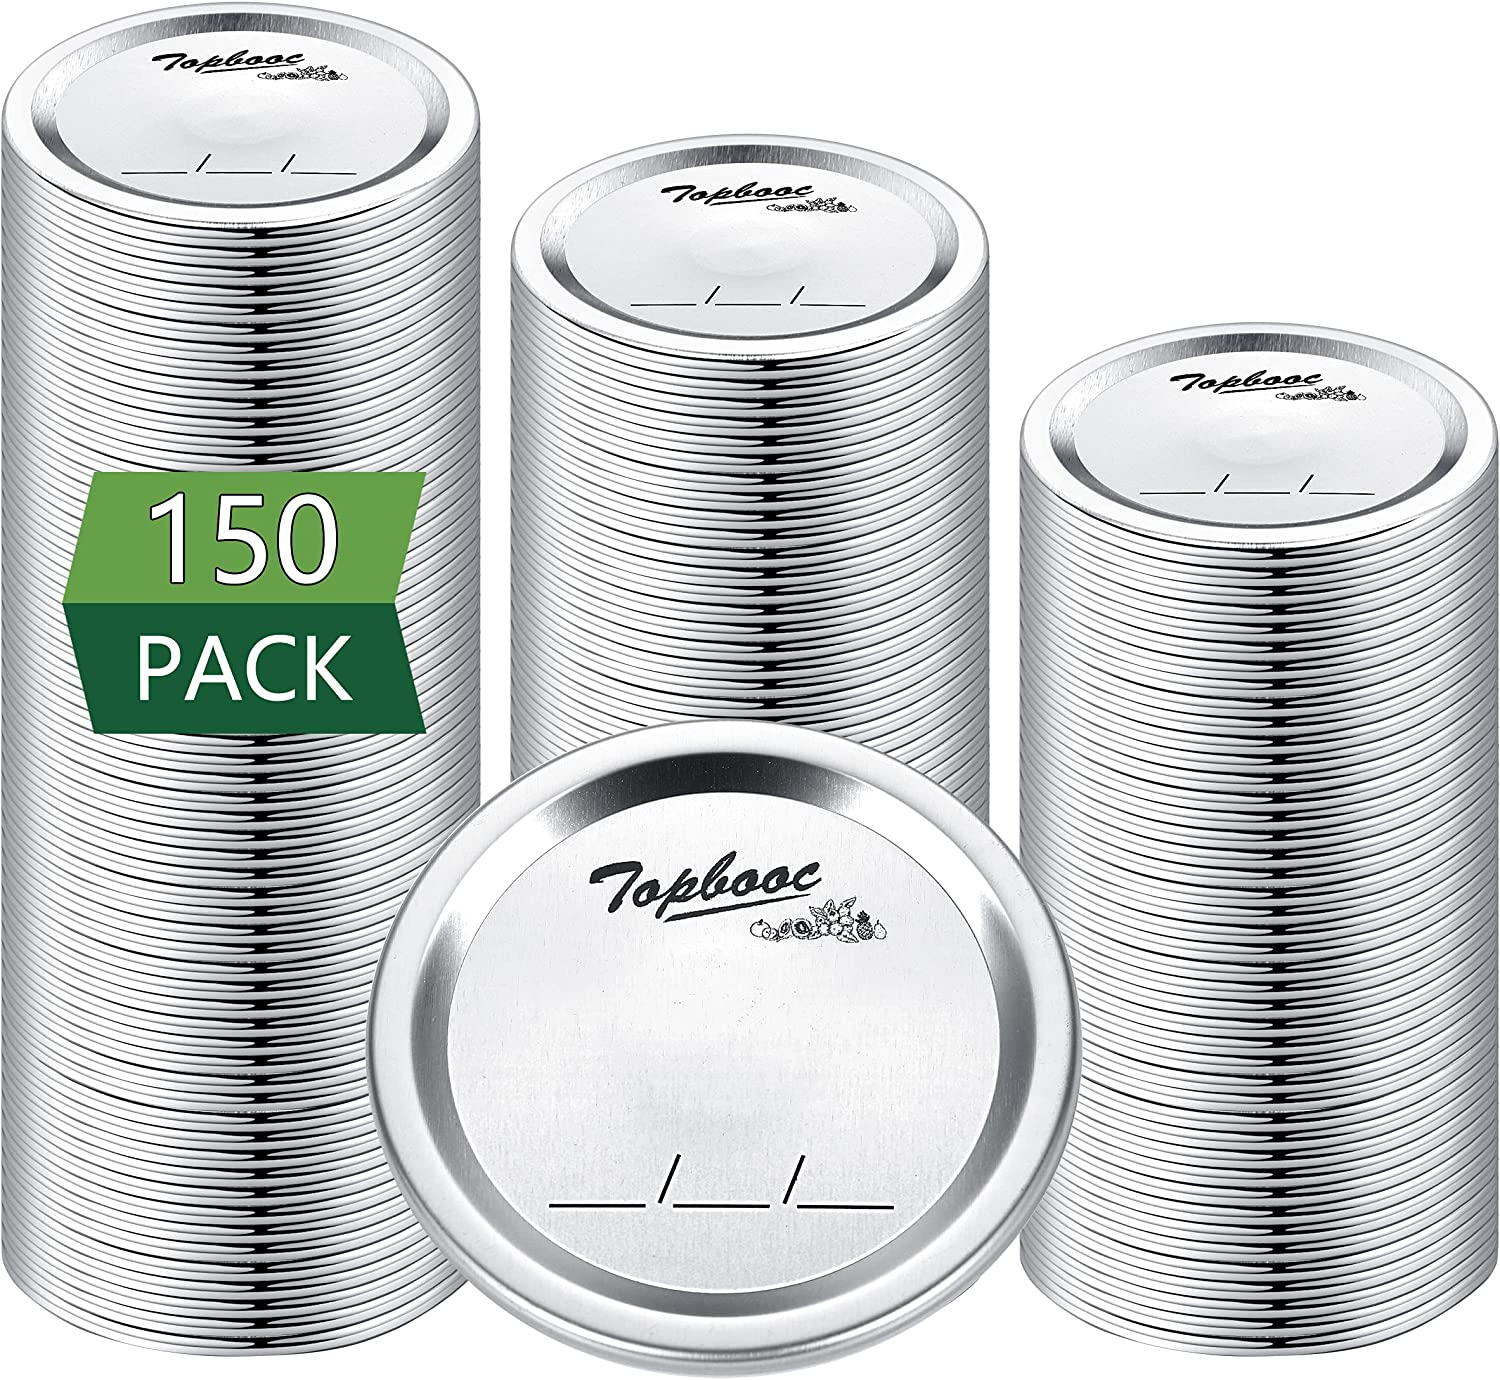 150 - Count,Regular Mouth Canning Lids for Ball, Kerr Jars - Split-Type Metal Mason Jar Lids for Canning - Food Grade Material, 100% Fit & Airtight for Regular Mouth Jars